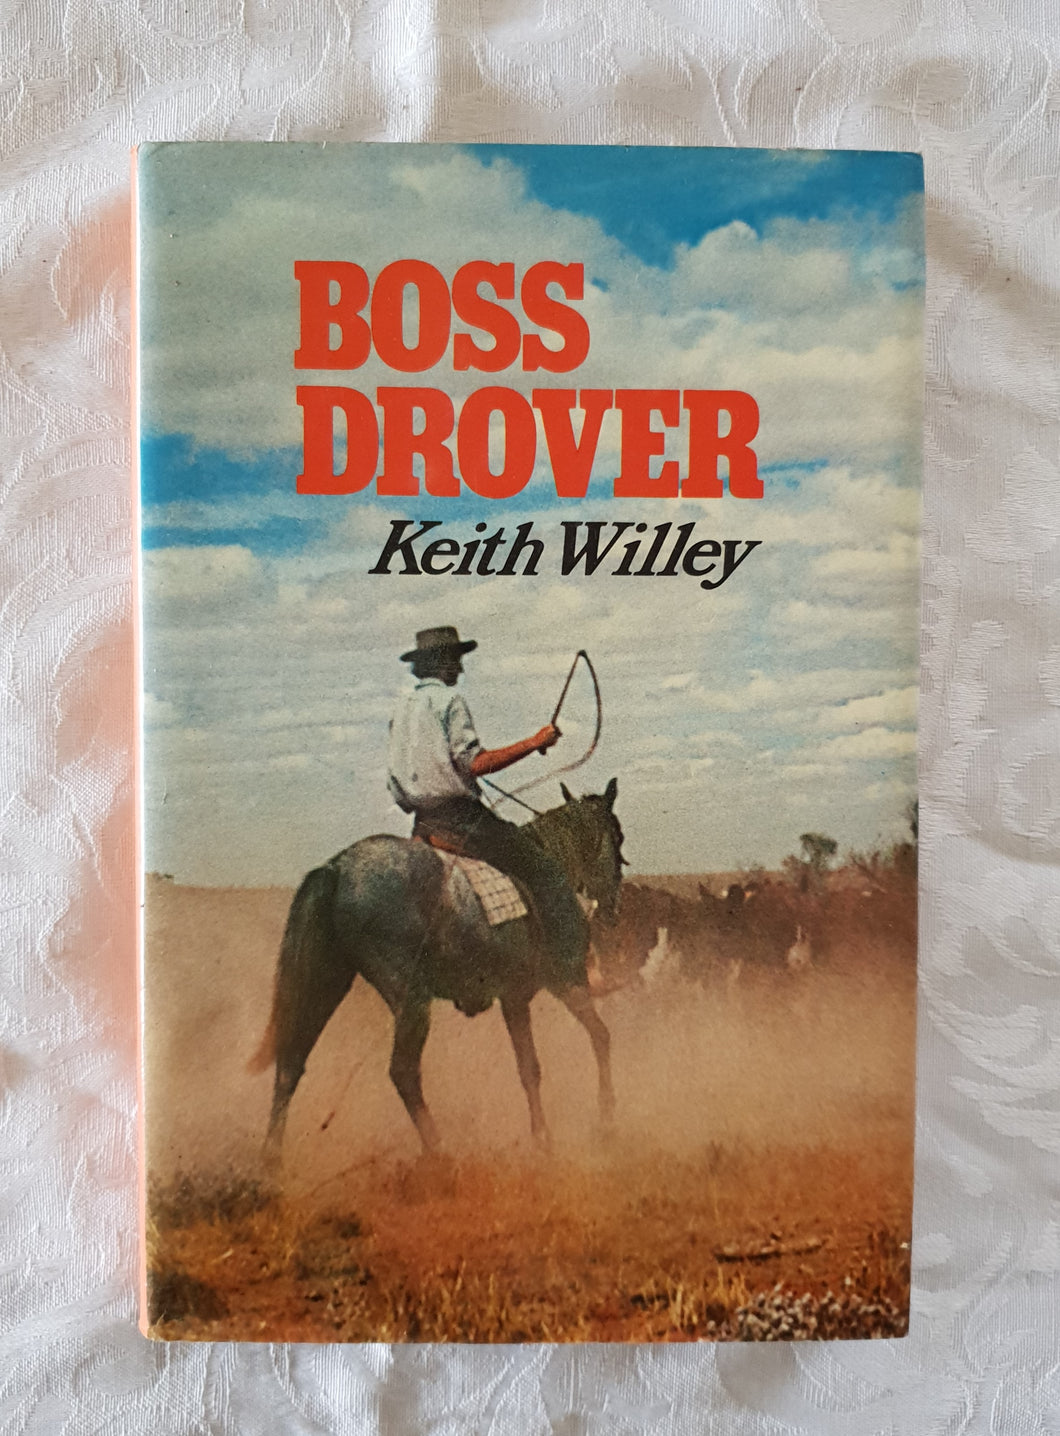 Boss Drover by Keith Willey